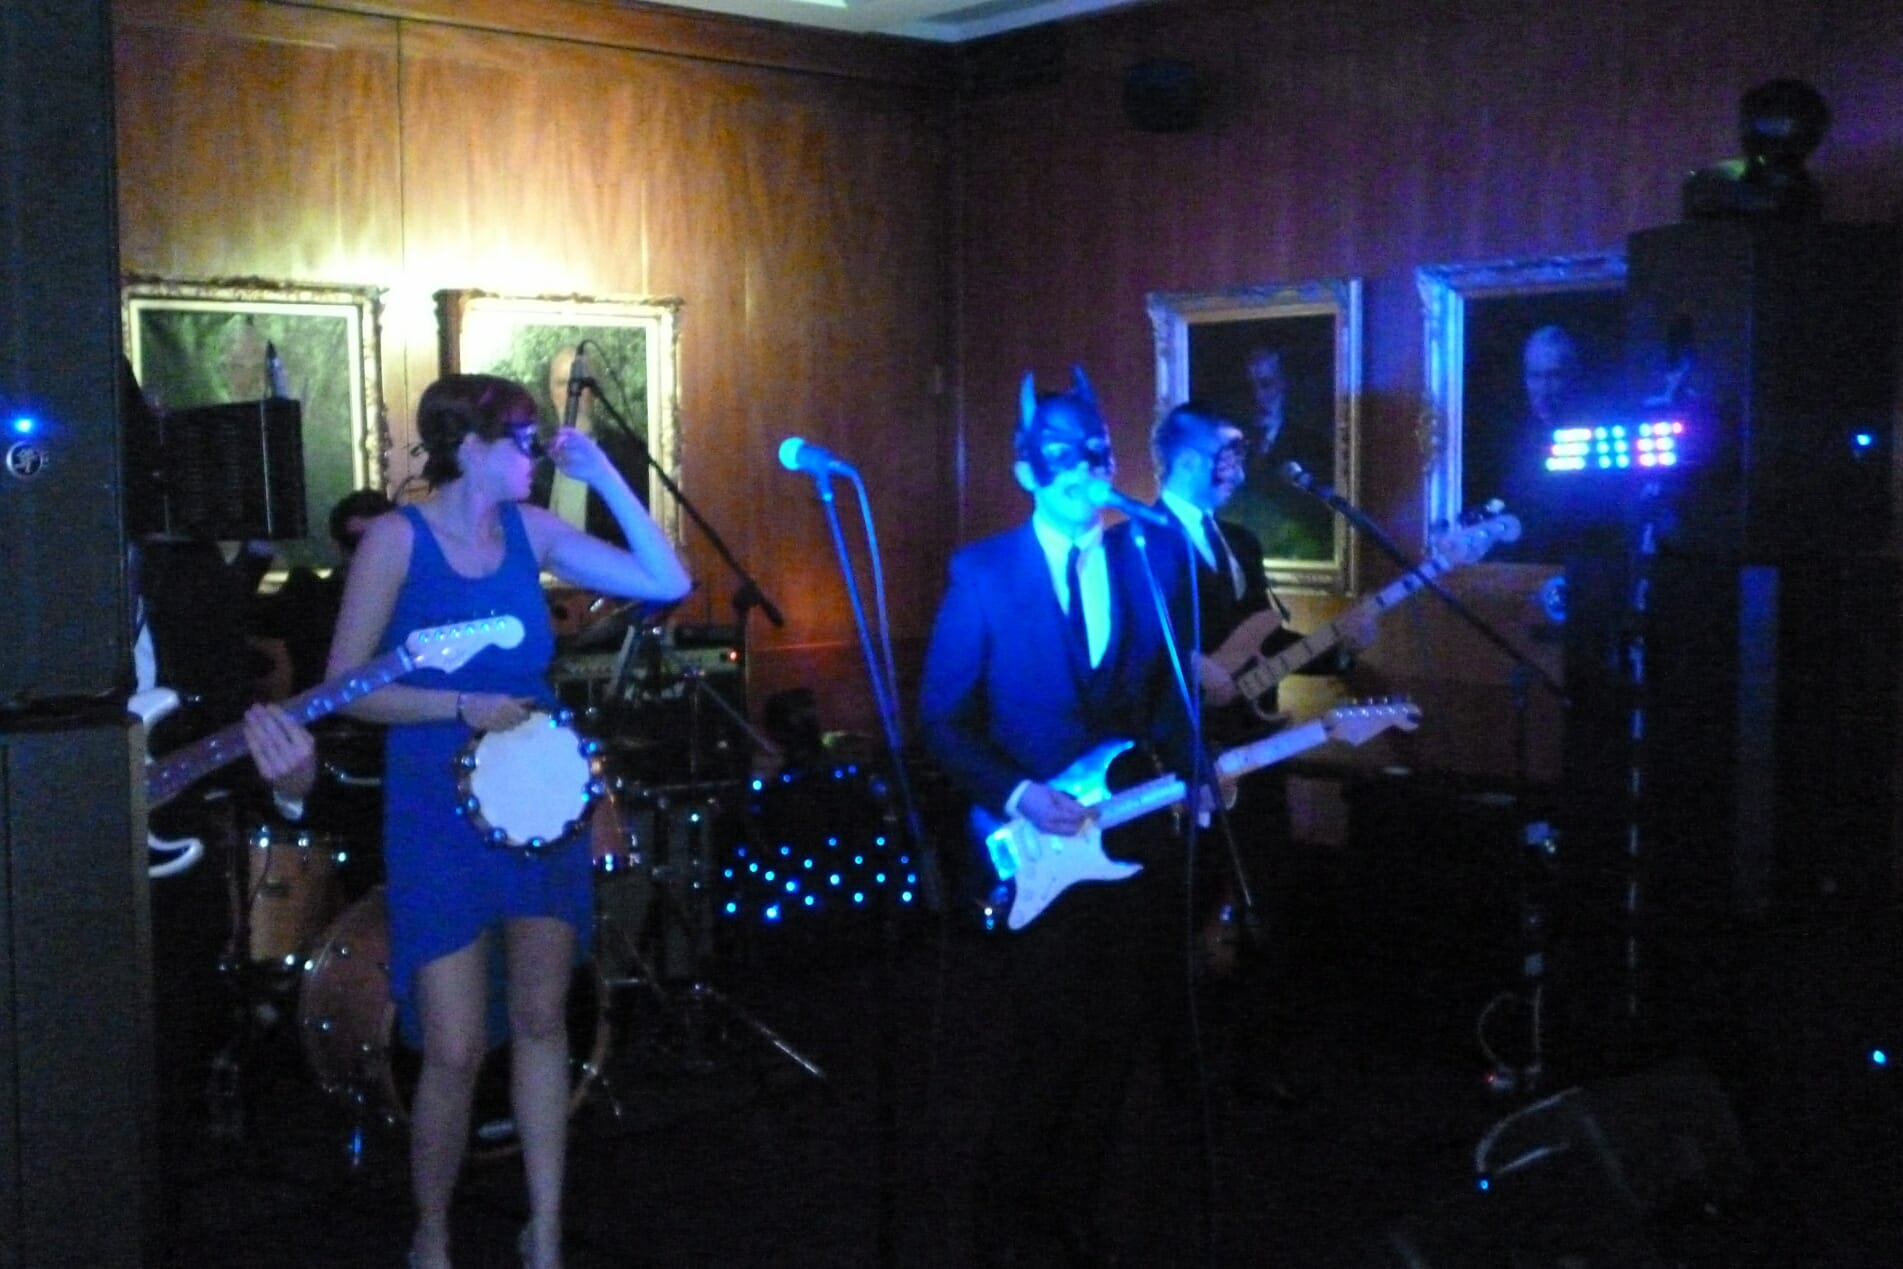 party band in wiltshire, party band in berkshire, party band in hampshire, party band in dorset, party band in devon, party band in south west, party band in the midlands, party band in south east, wedding band in devon, party band in Oxfordshire, party band in oxford, party band in Herefordshire, party band in Wales, party band in South wales, party band in Hereford, party band in Cirencester, party band in Reading,party band in Cardiff, party band in Glamorgan, party band in Gloucestershire, wedding band